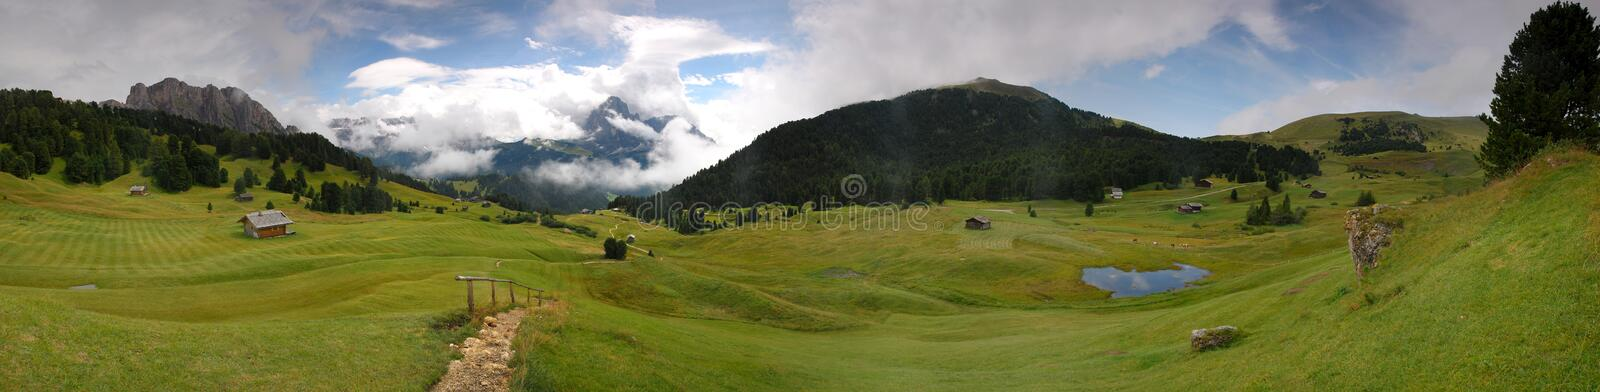 Panoramic view of the Dolomites peaks royalty free stock photos